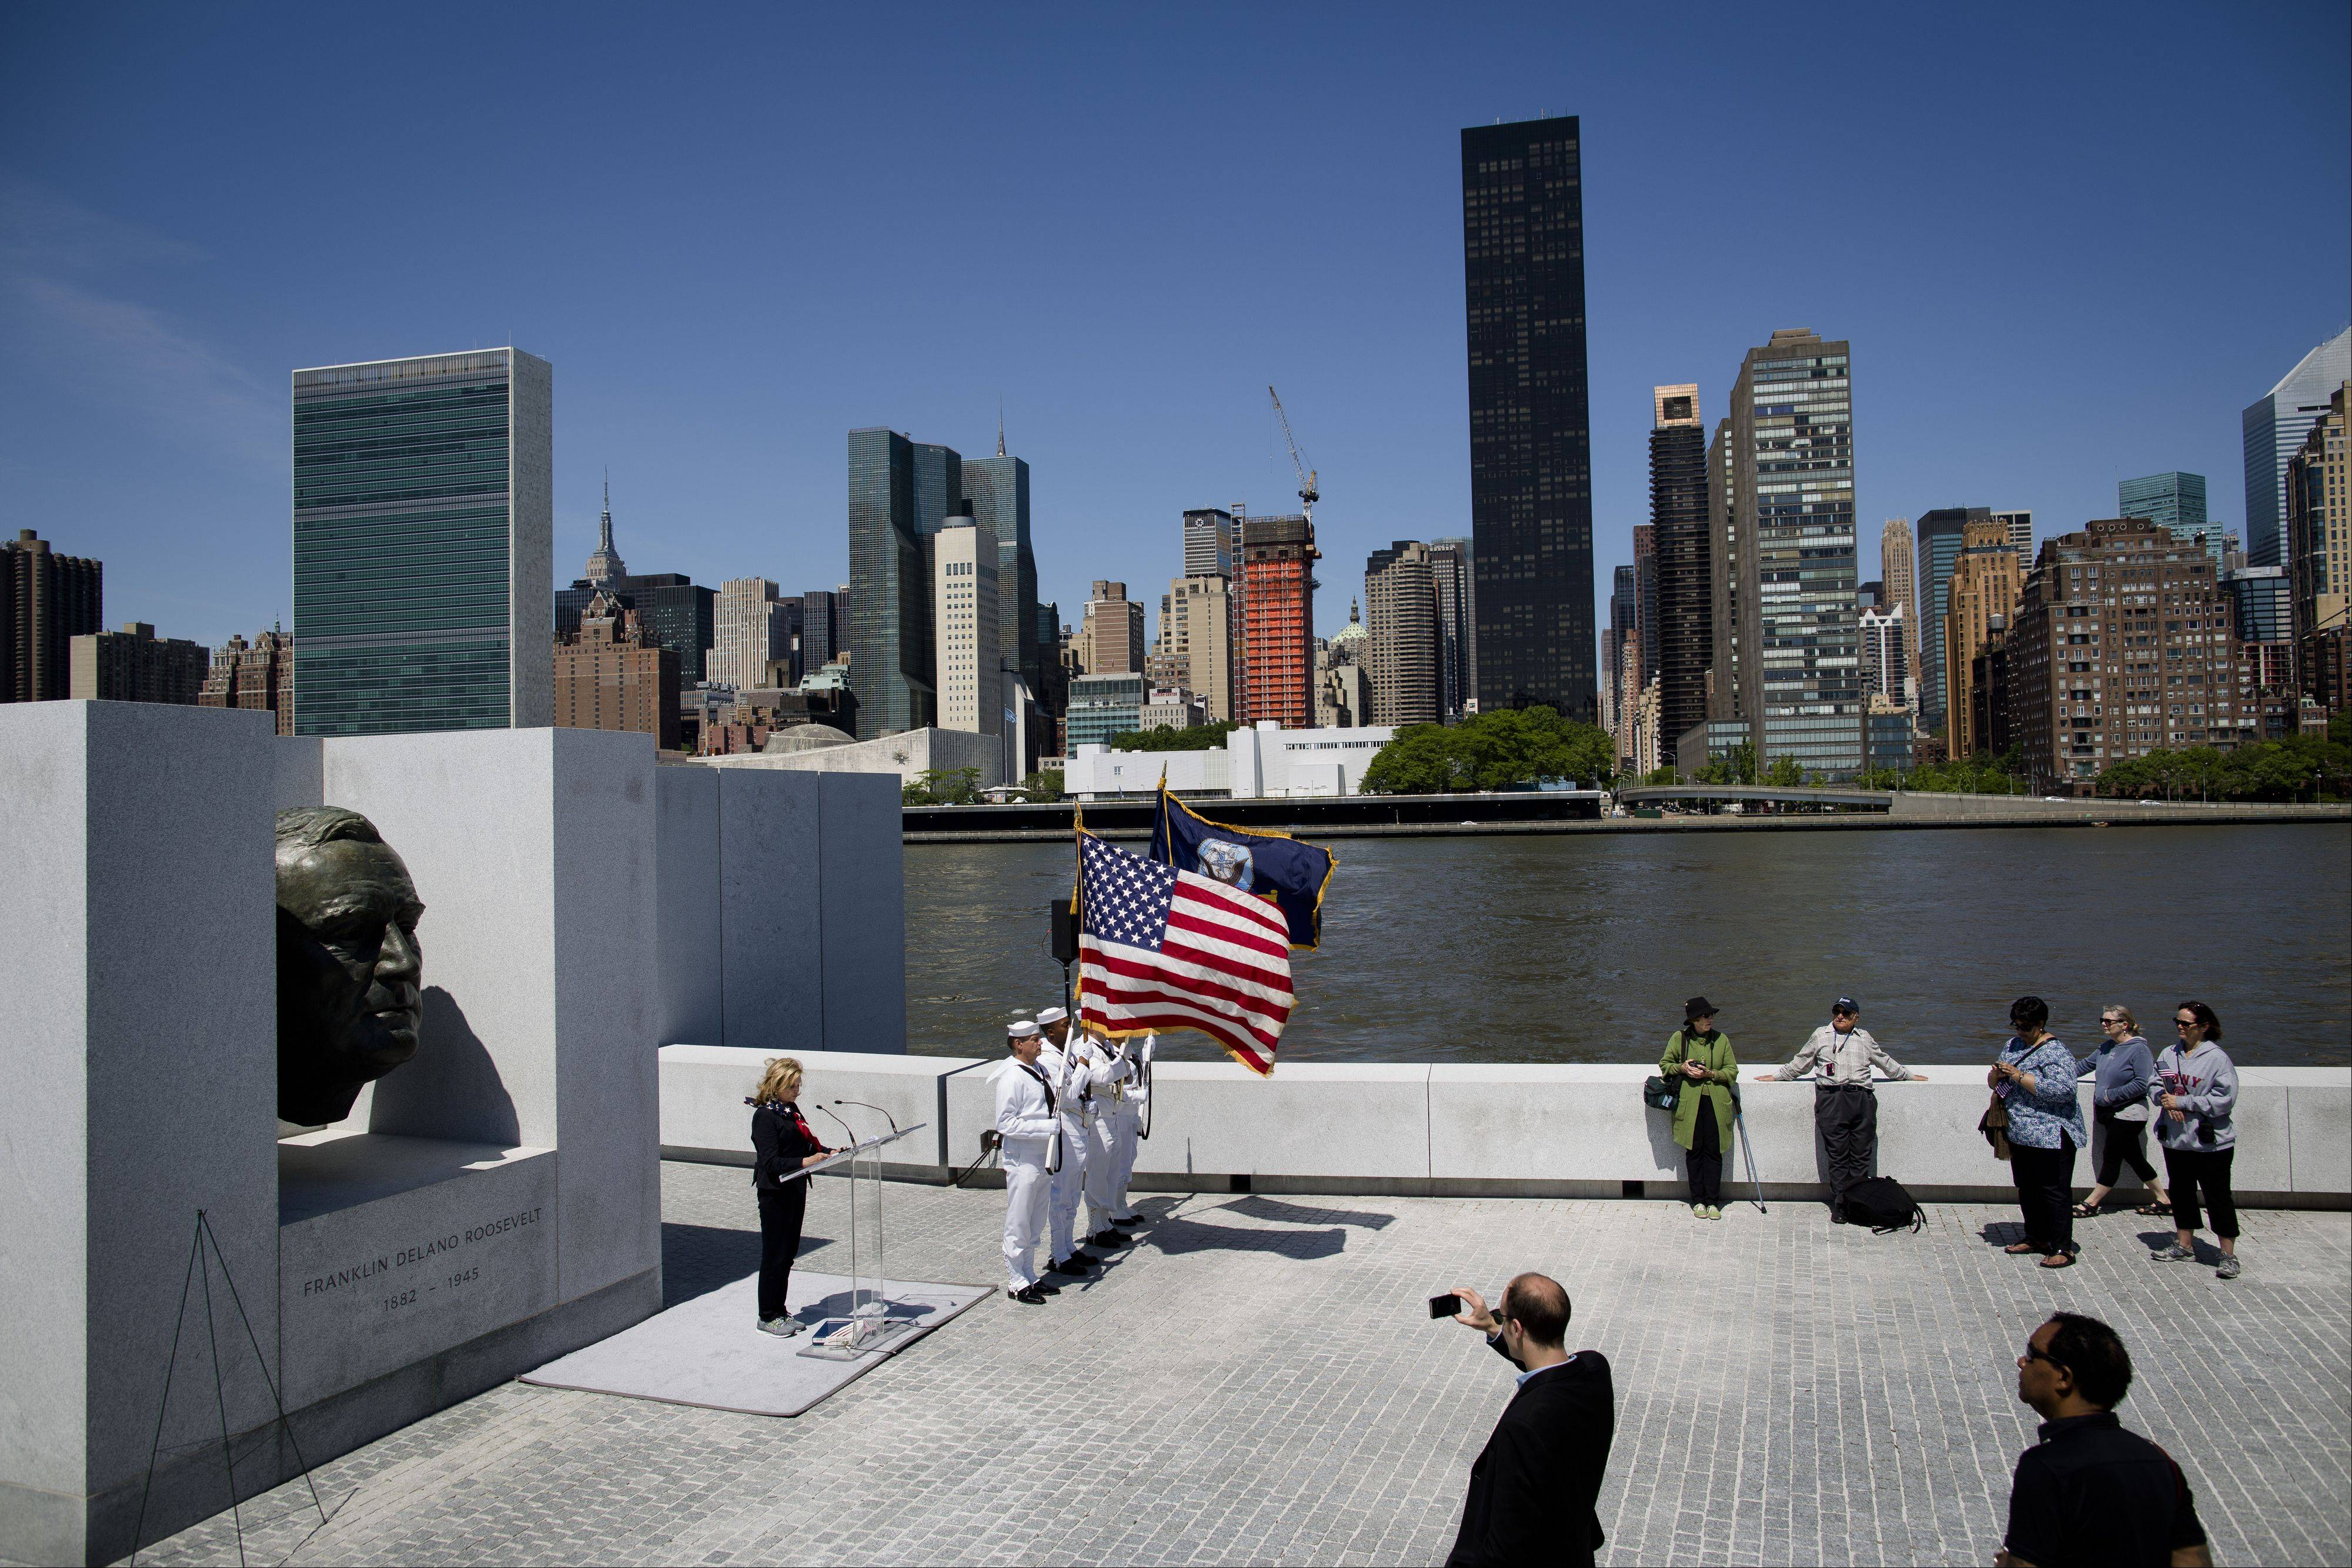 New York congresswoman Carolyn Maloney speaks during a Memorial Day wreath laying at the Franklin D. Roosevelt Four Freedoms Park on Roosevelt Island, Monday, May 27, 2013, in New York.